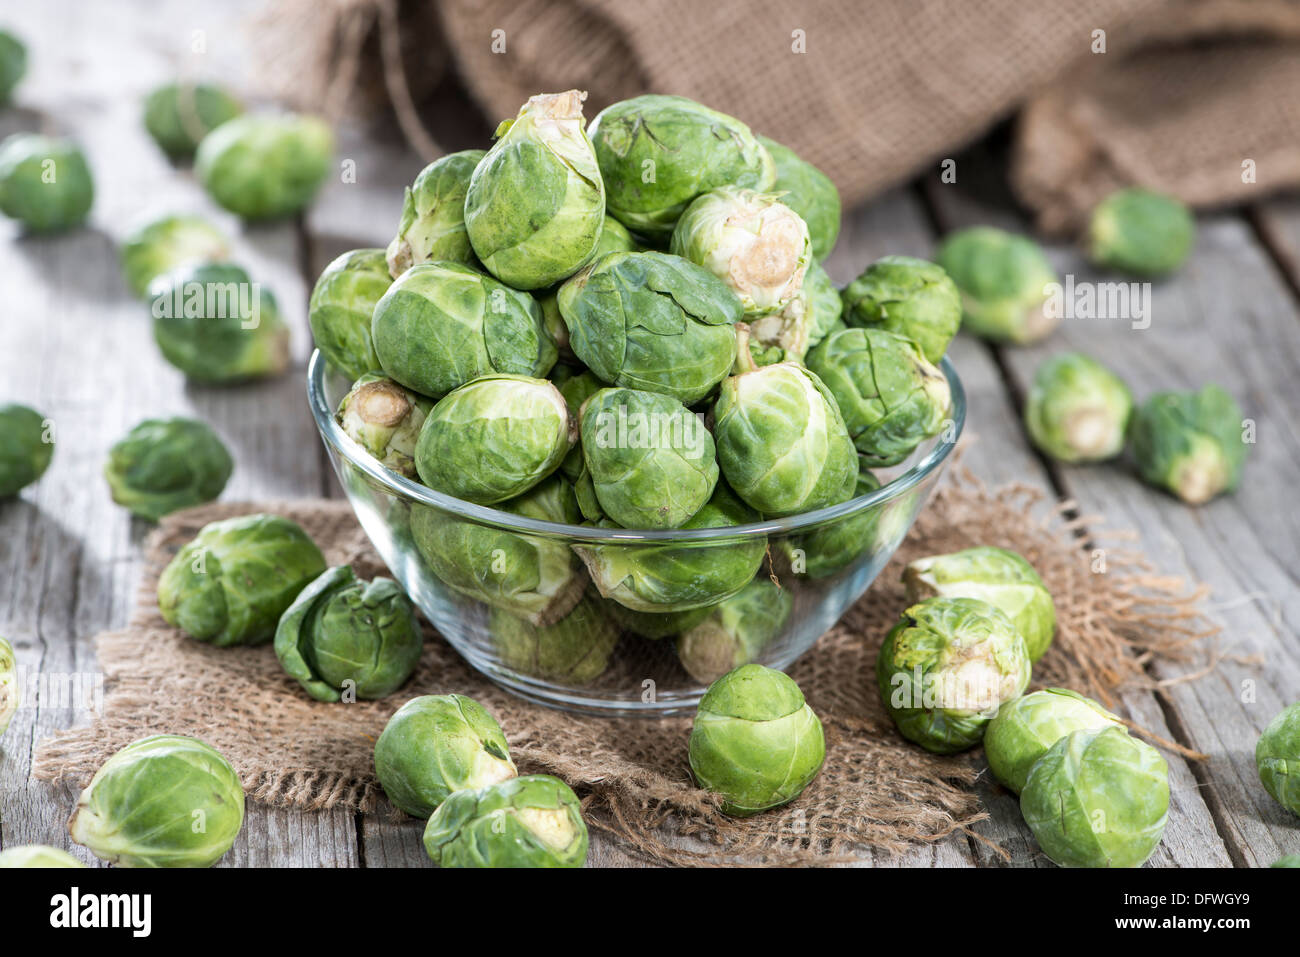 Portion of raw Brussel Sprouts - Stock Image